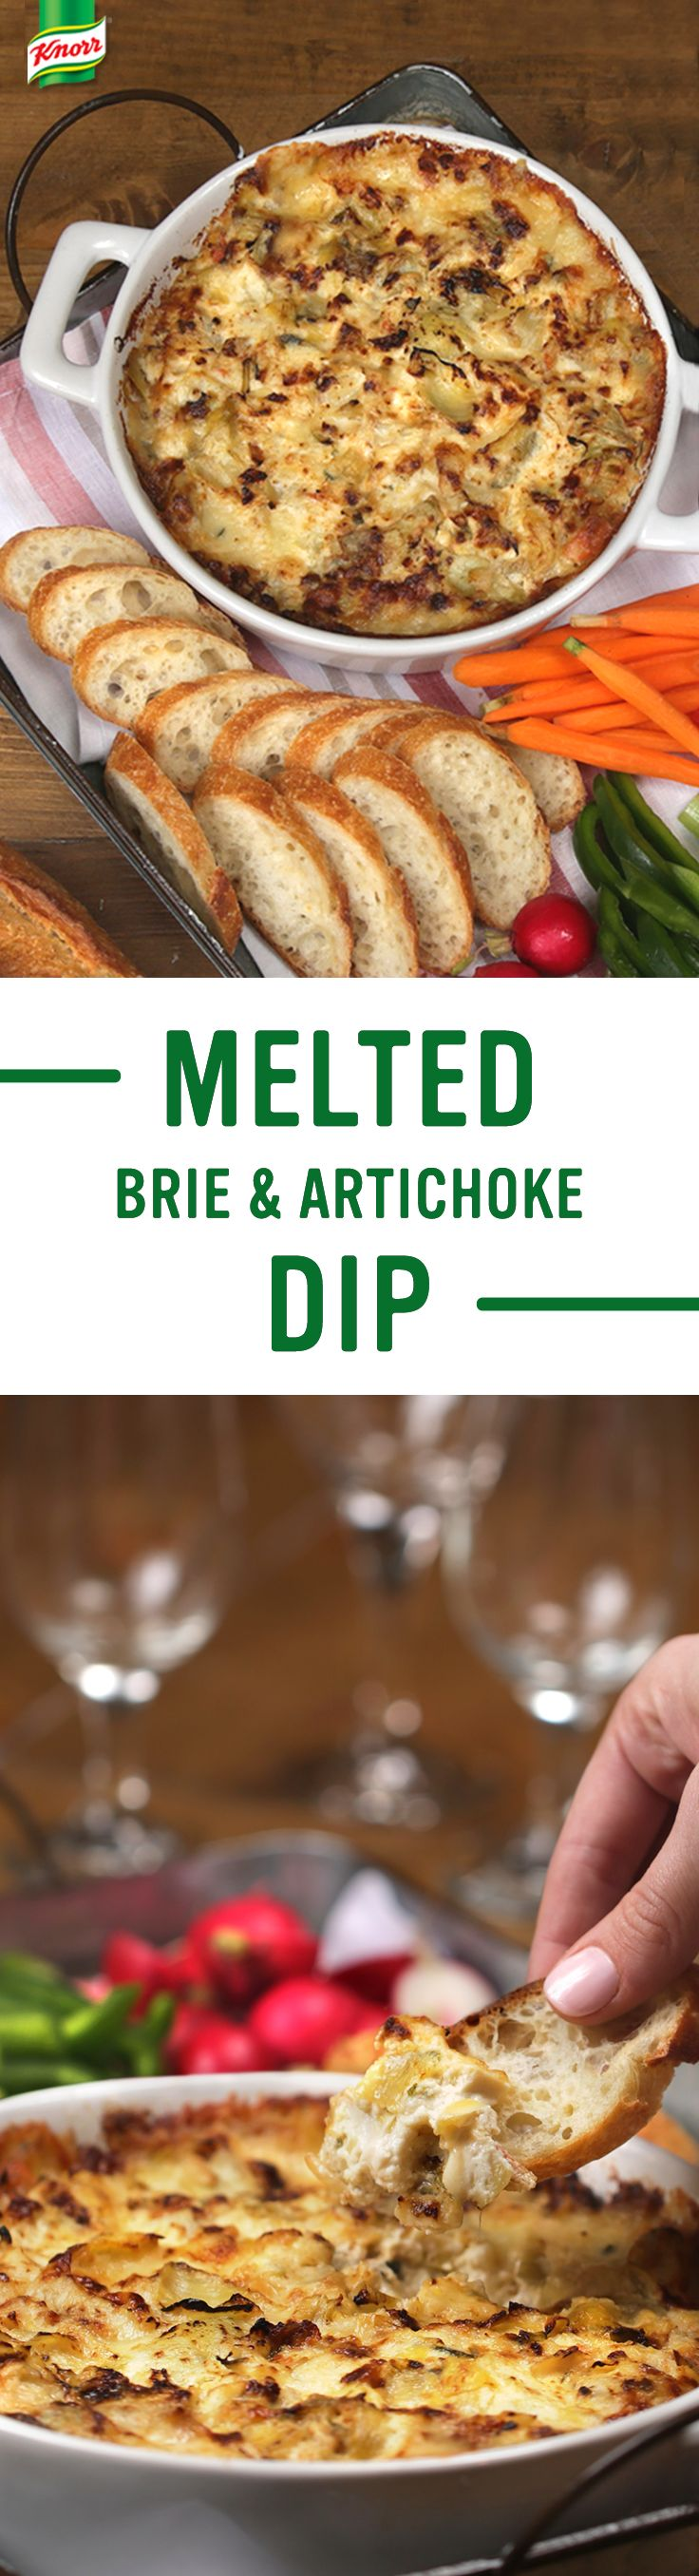 Looking for the best dip recipe? Knorr's Melted Brie & Artichoke Dip is full of cheesy & veggie flavors party guests will love, and makes a delicious meat free treat at the dinner table. Follow these simple steps for a new family favorite: 1. Combine package of Knorr® Vegetable recipe mix, mayonnaise, sour cream, & brie 2. Bake at 350° for 30 minutes. 3. Serve with sliced French bread and enjoy!